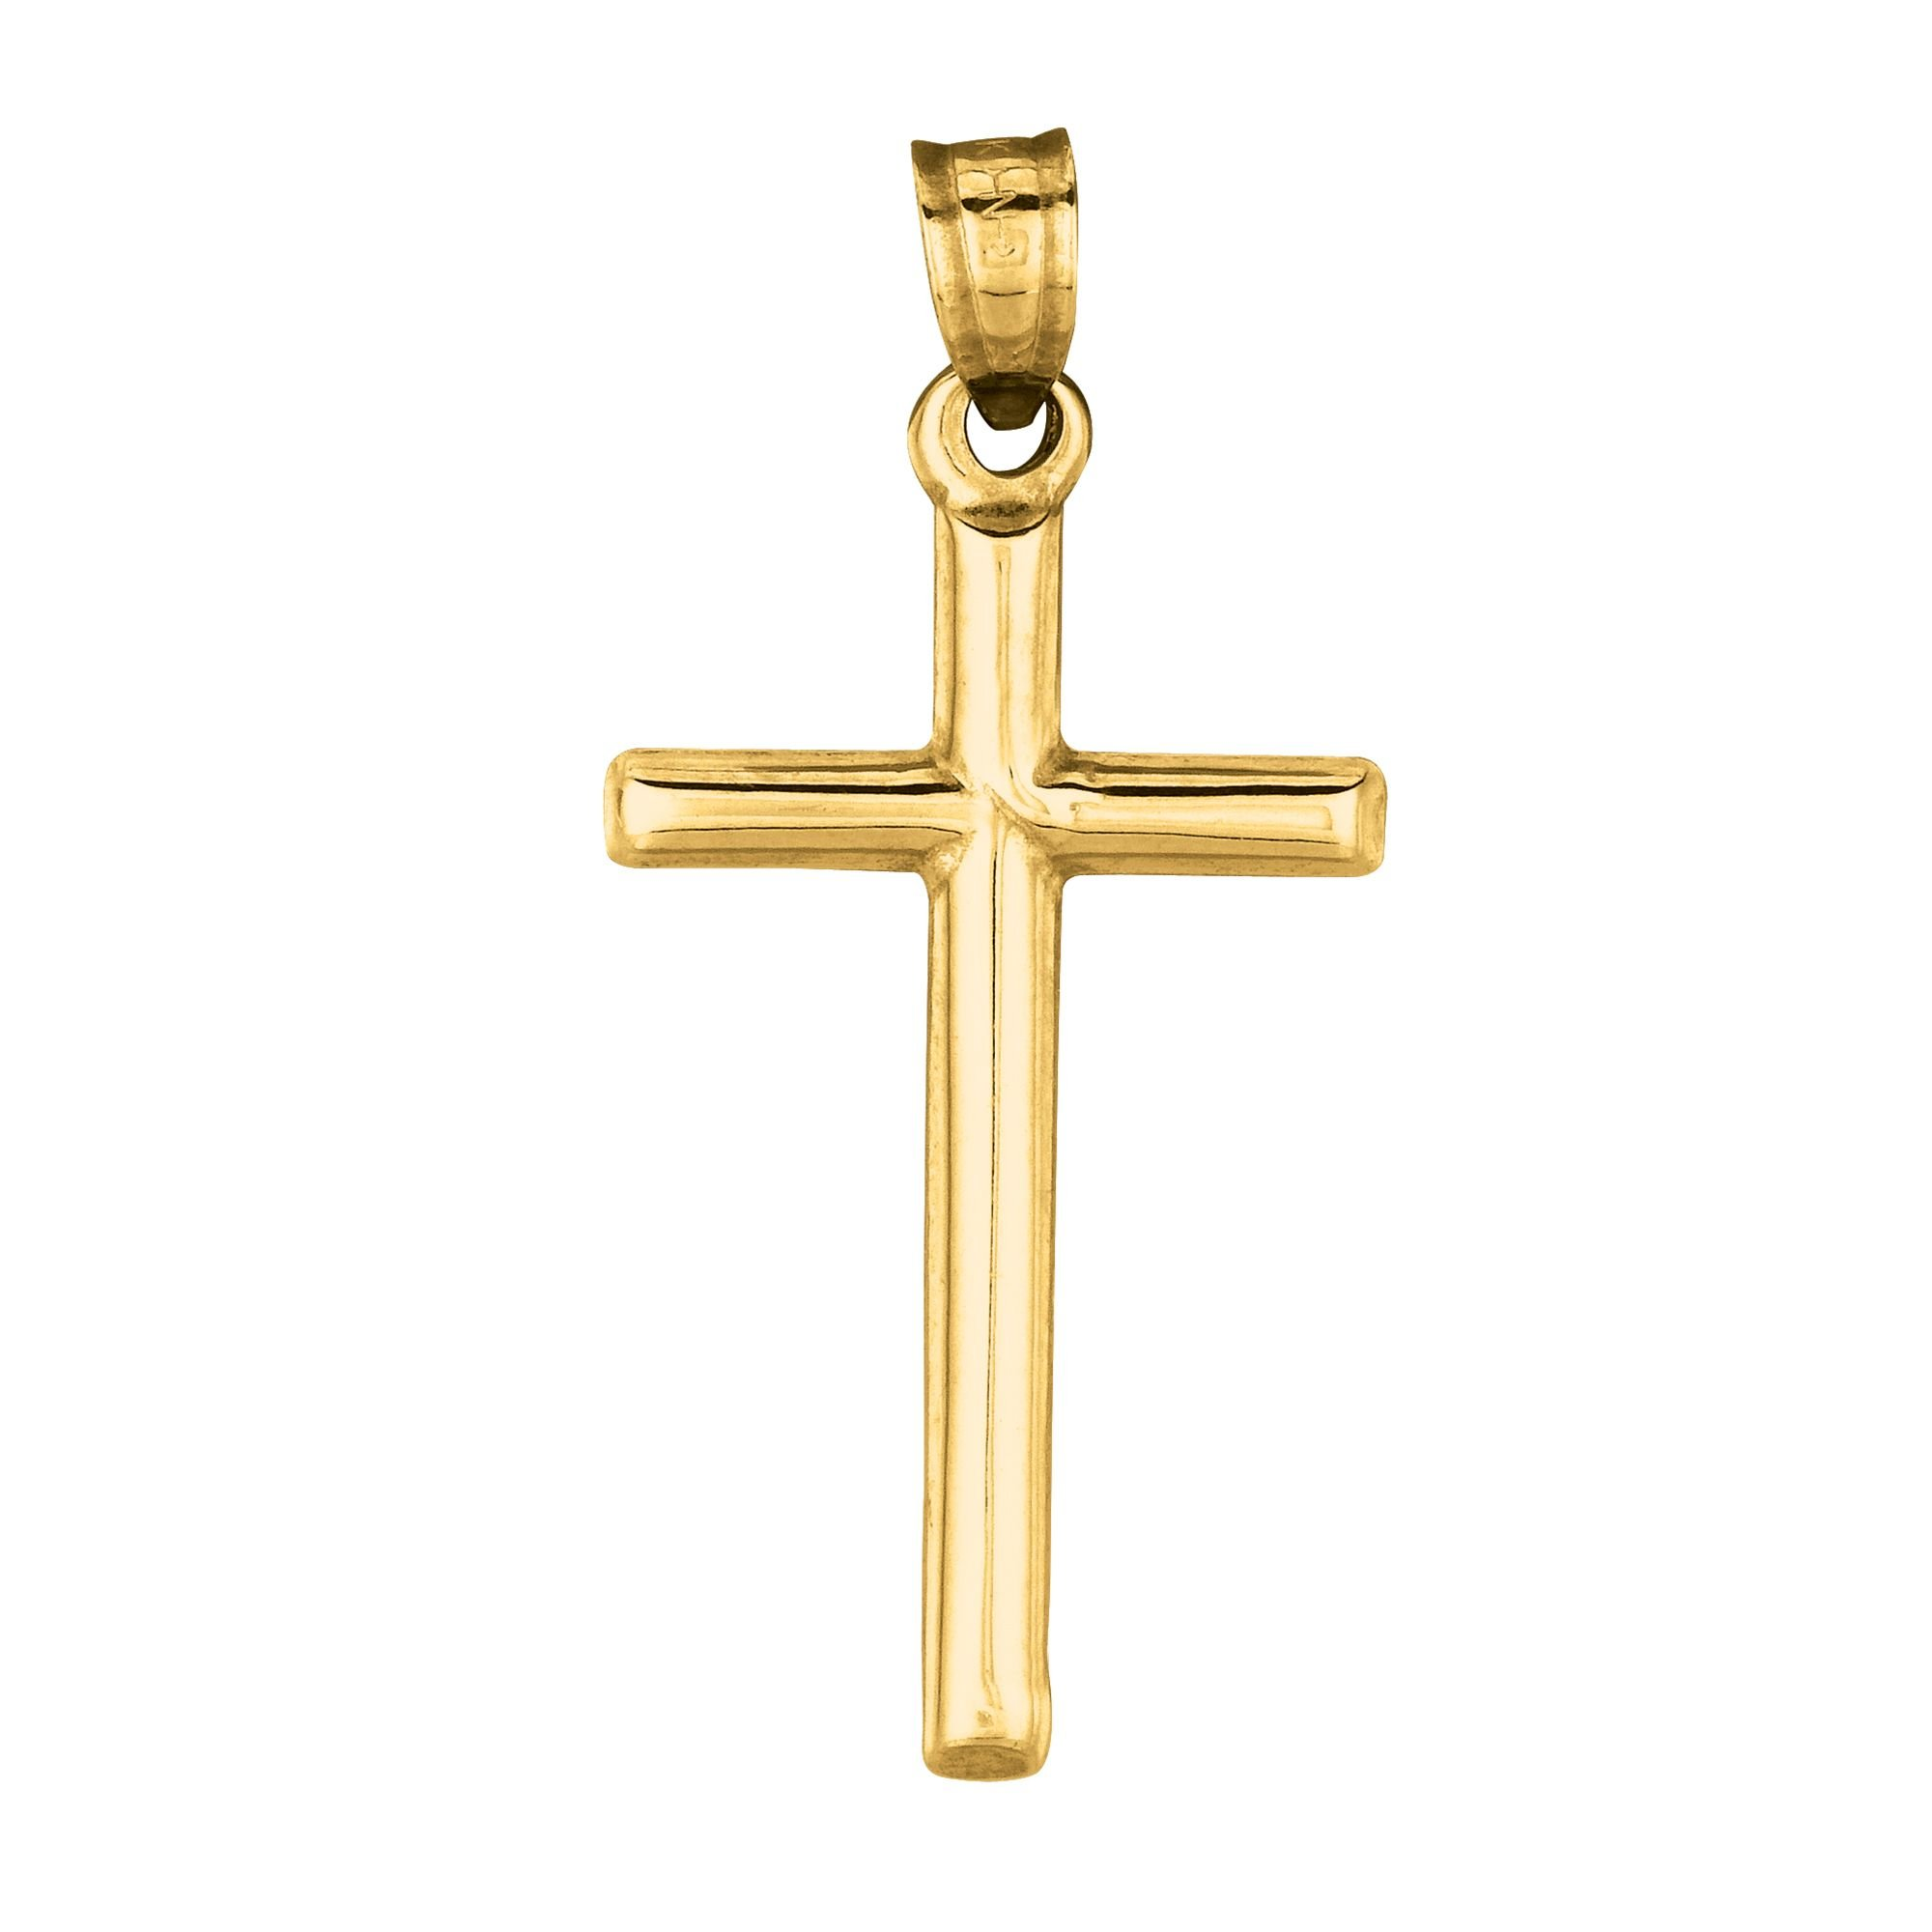 14k Yellow Gold Cross Crucifix Pendant Classic Charm Plain 1.25 inch